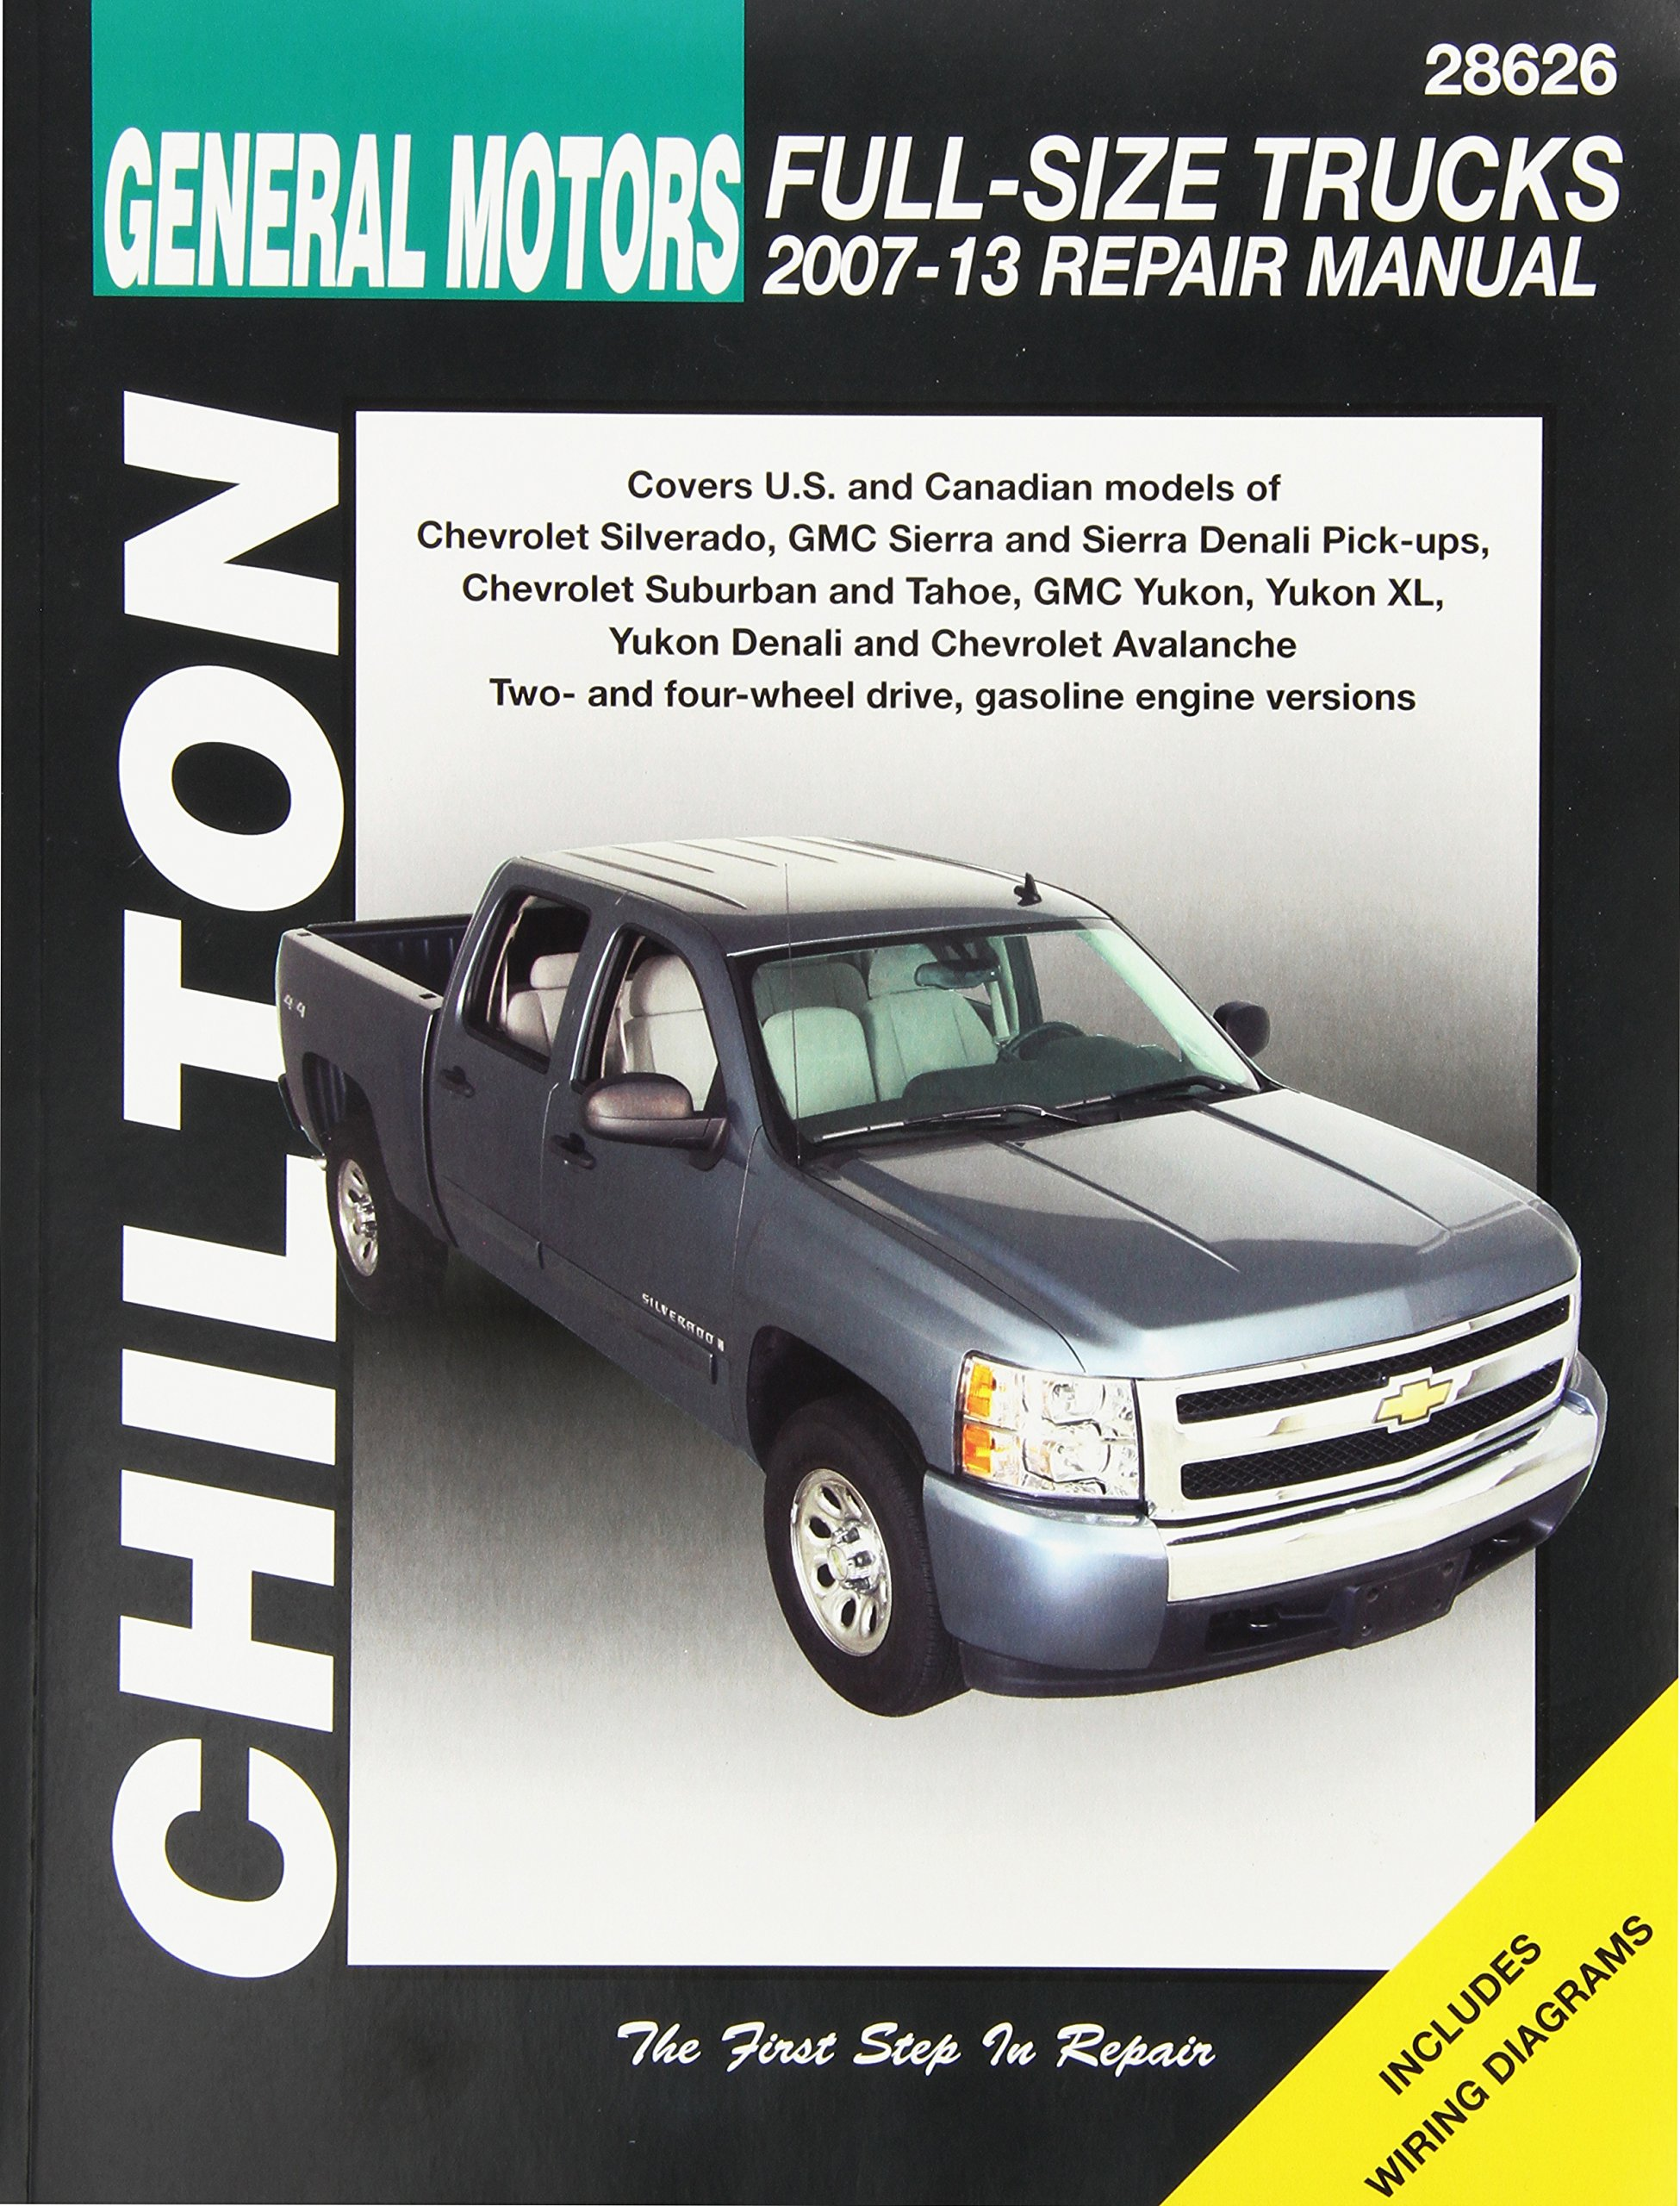 amazon com gm full size trucks chilton repair manual 2007 2012 rh amazon com 2001 gmc sierra 2500hd service manual 2001 gmc sierra owners manual pdf